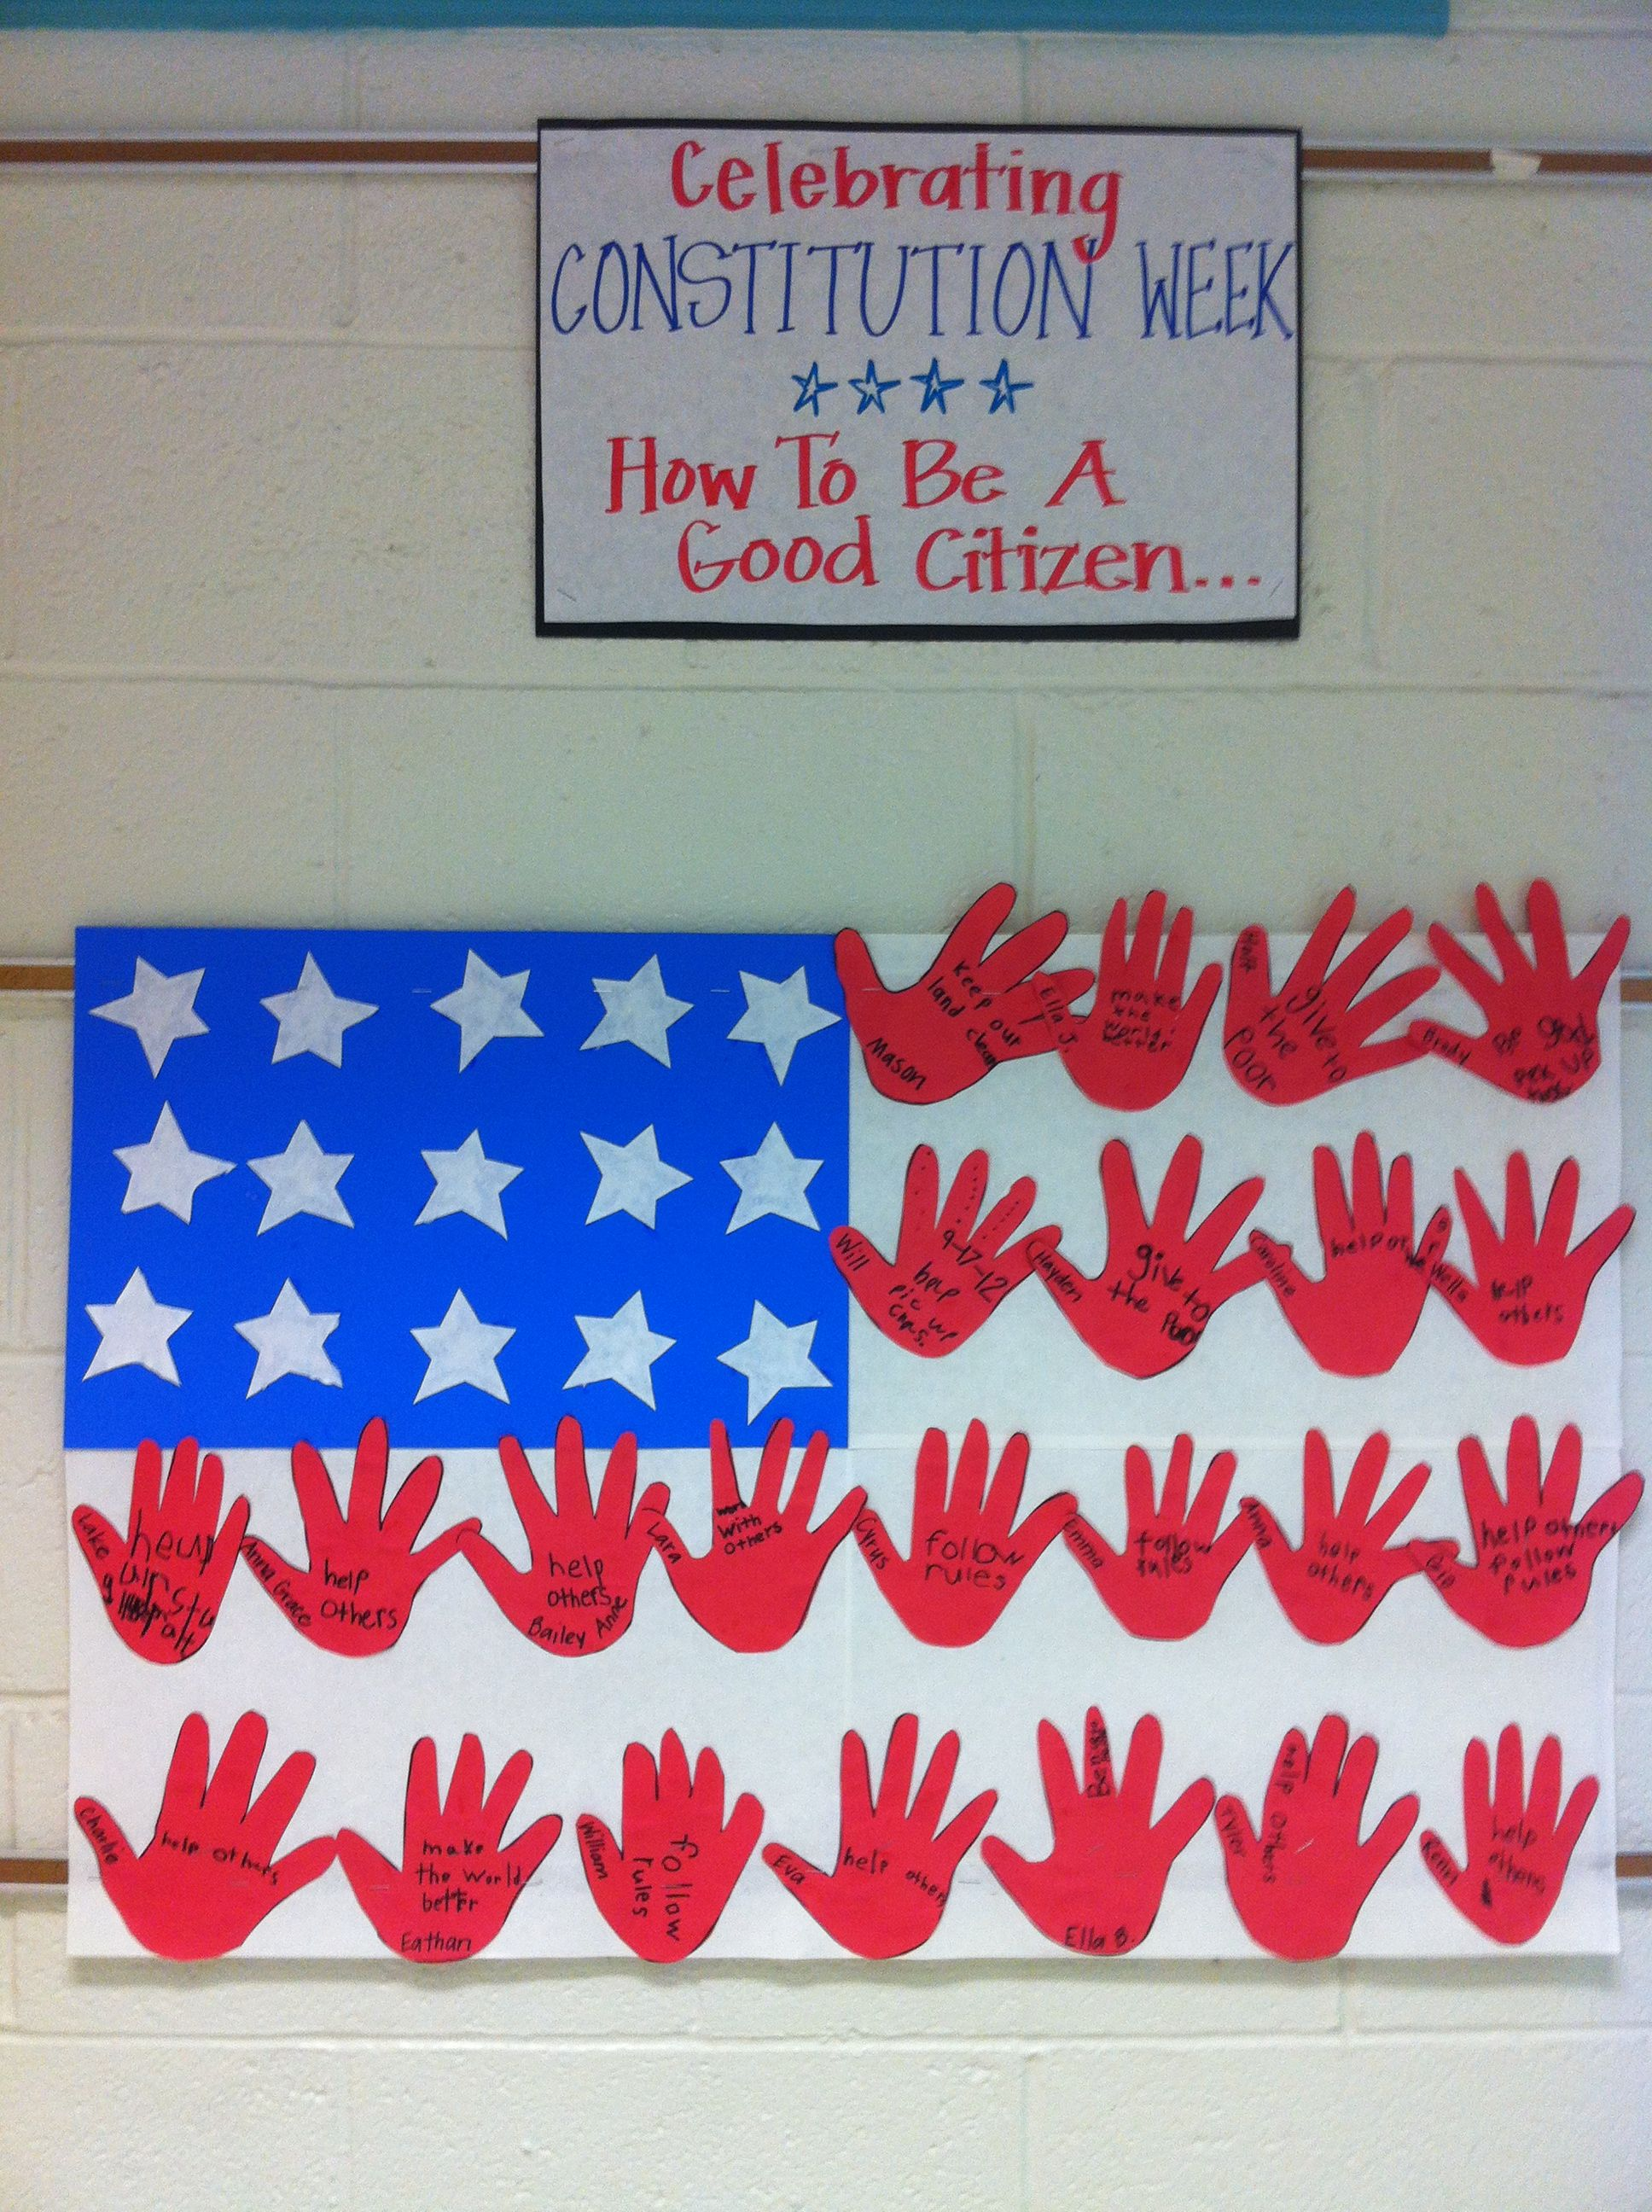 Celebrating Constitution Week. Good Citizen